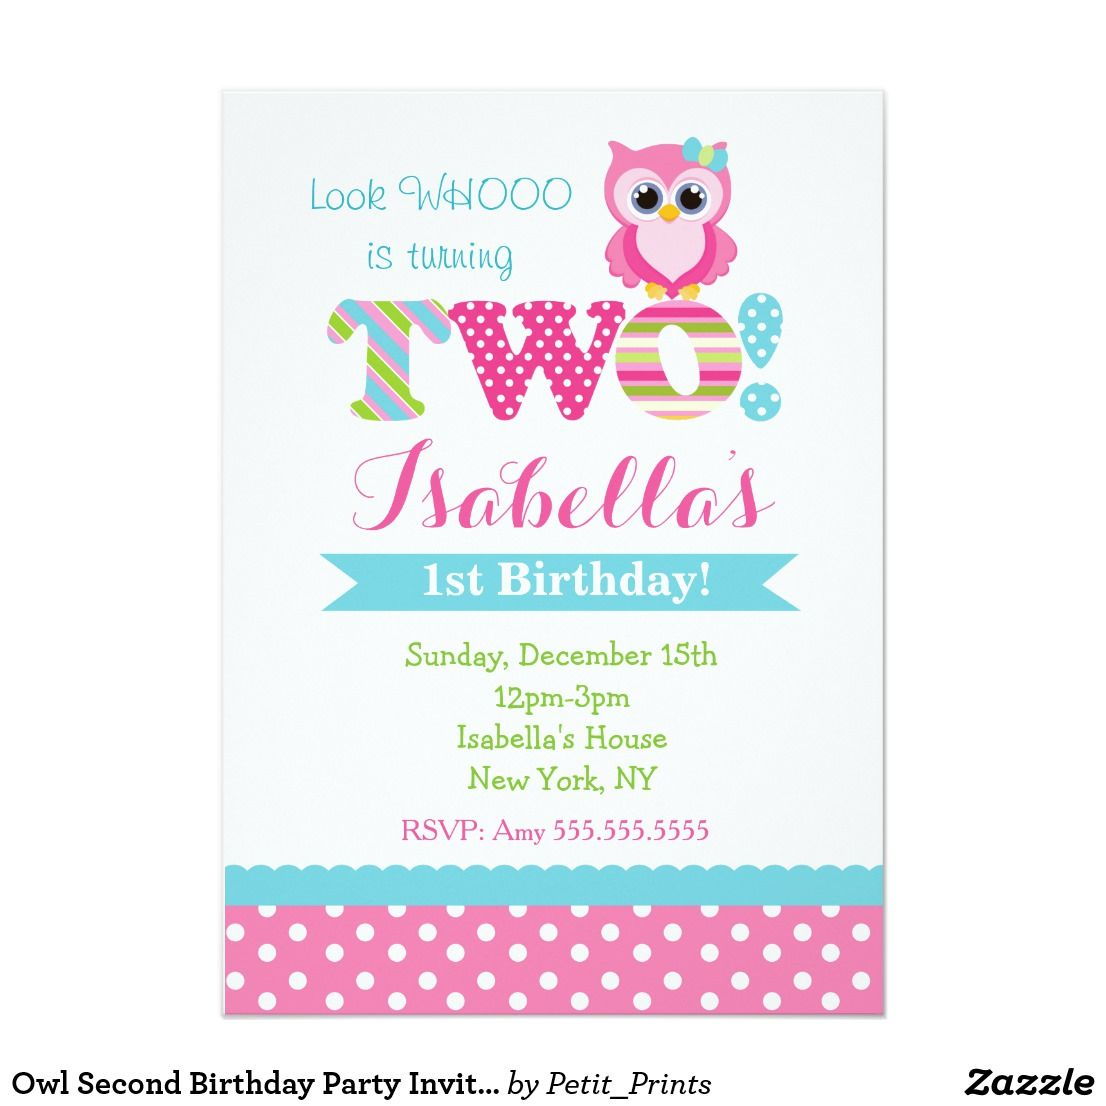 Owl Second Birthday Party Invitations | Party invitations and Birthdays